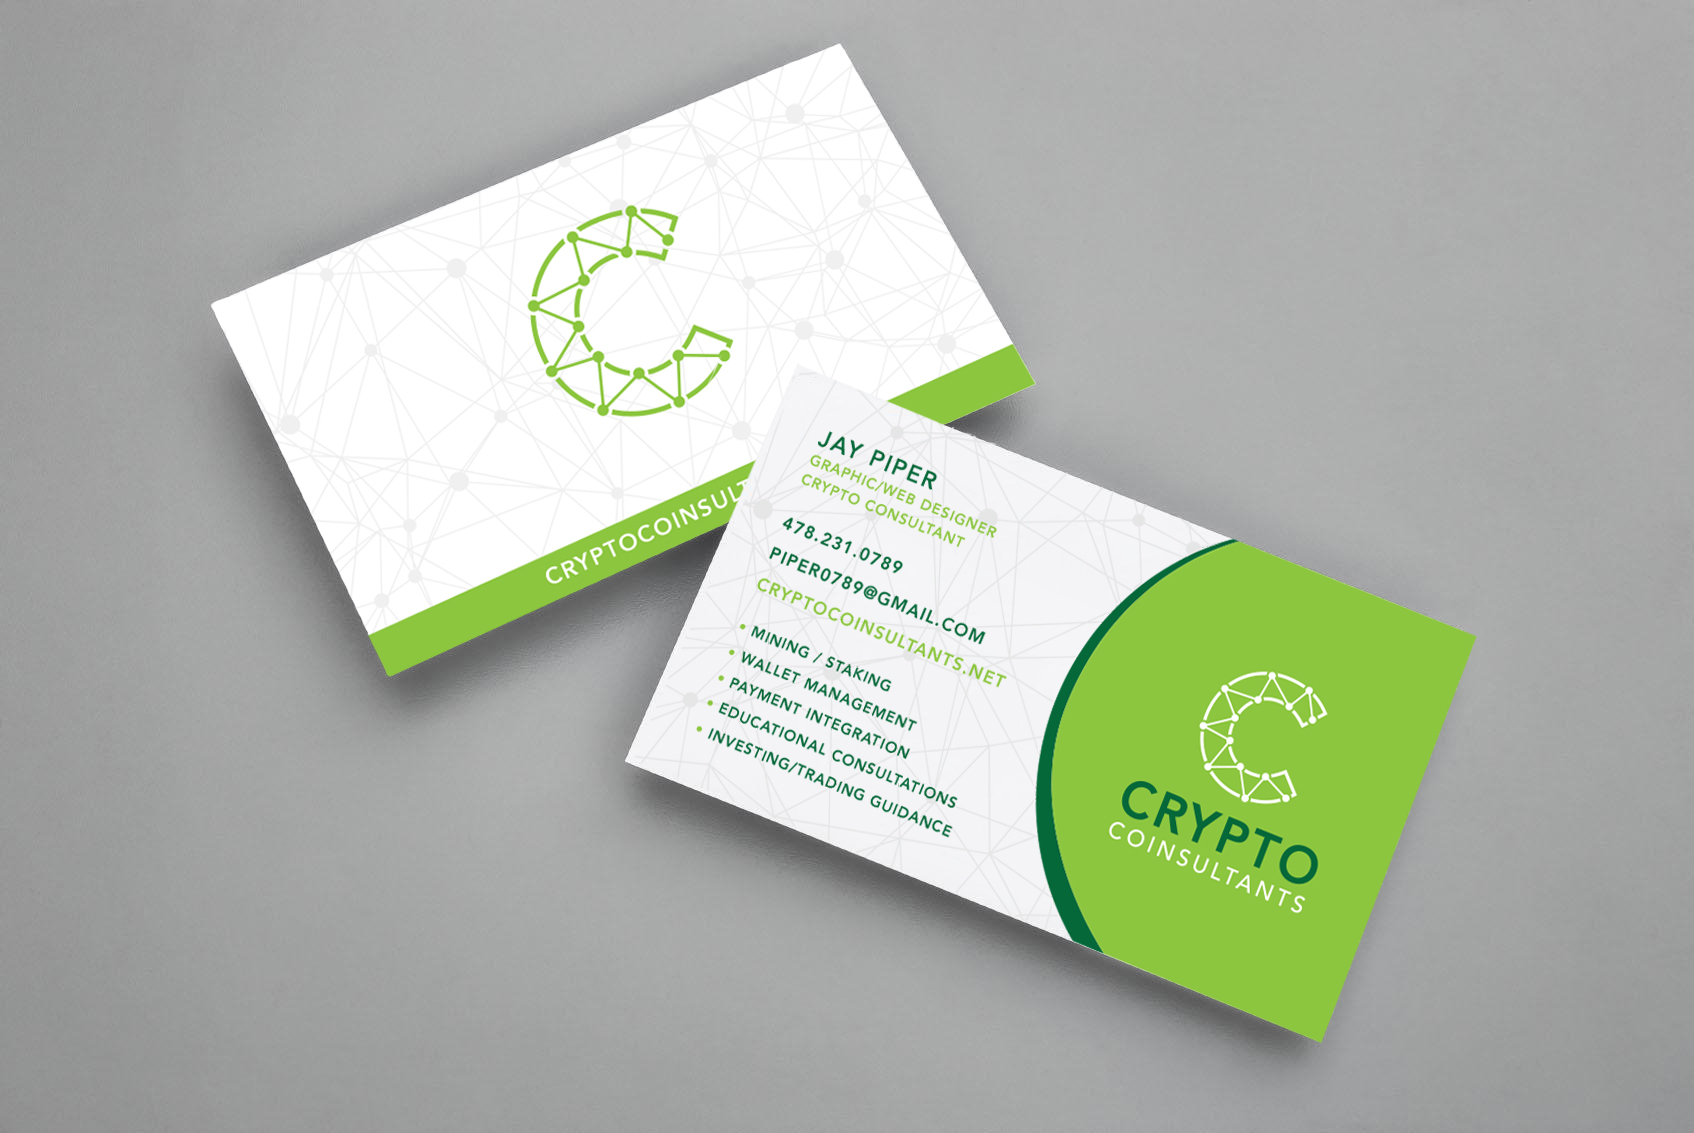 Businesscards2 copy.jpg